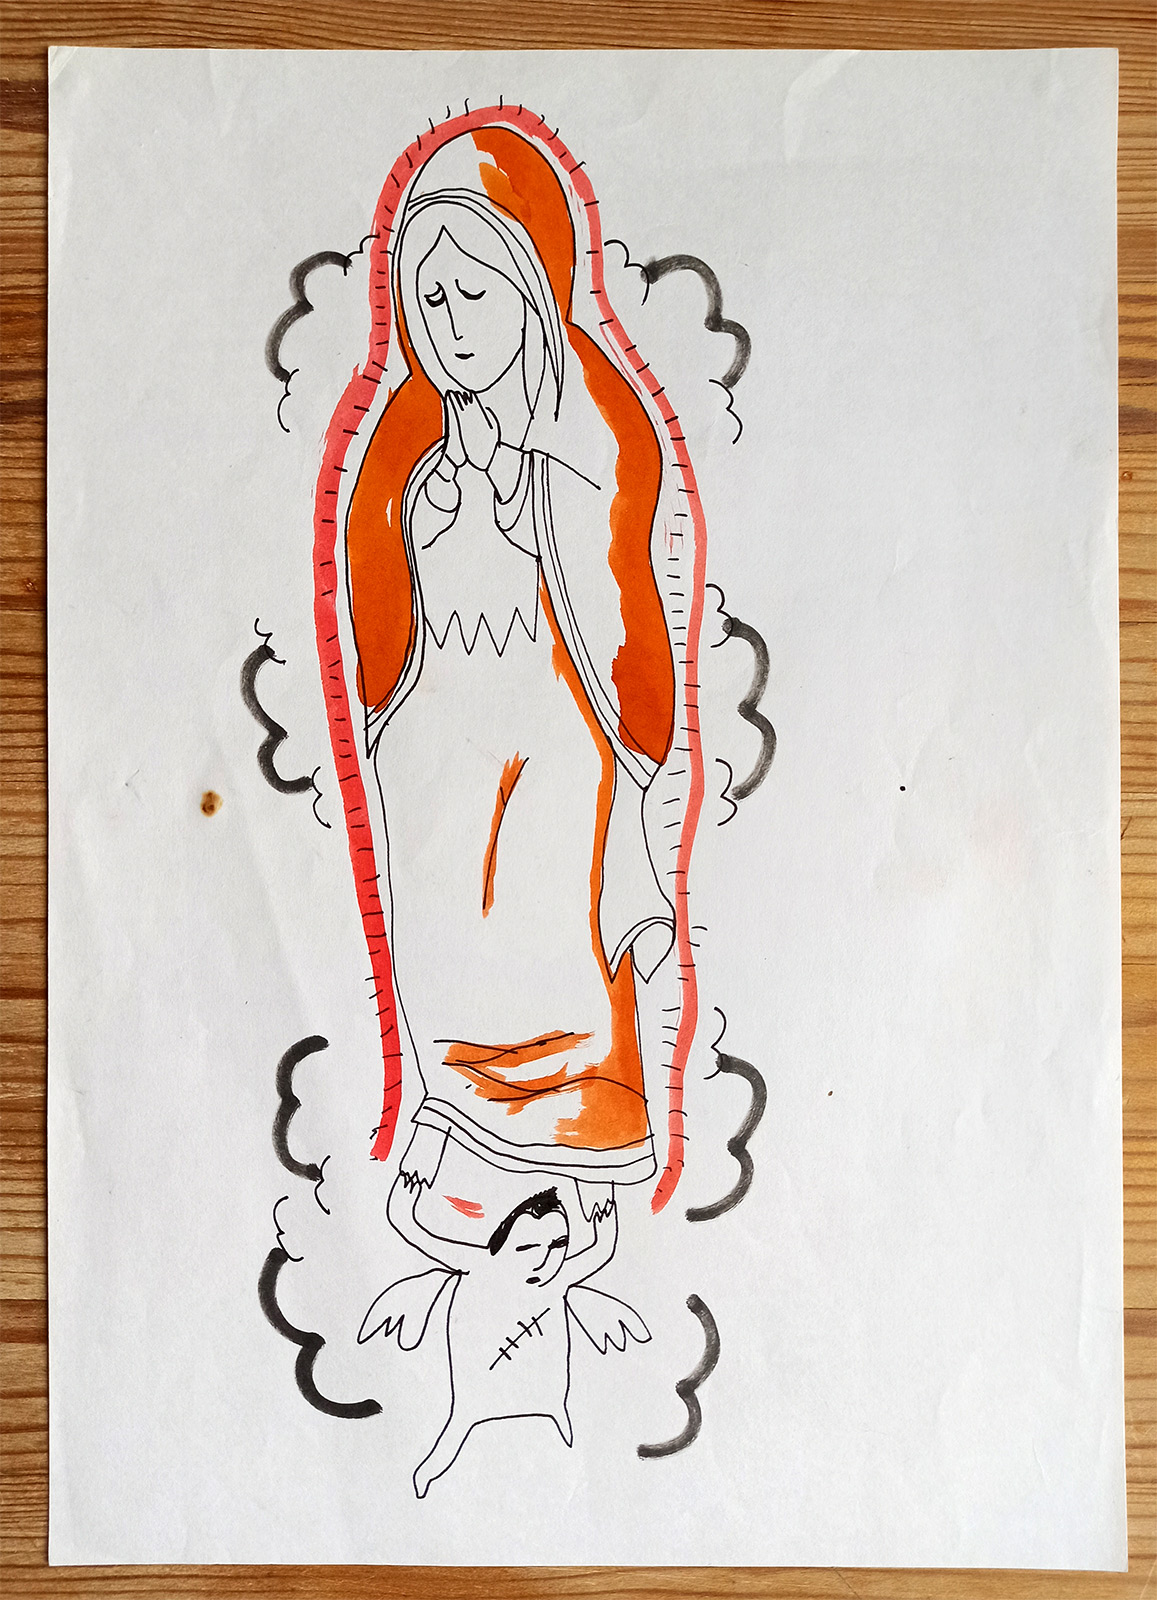 drawings, aesthetic, figurative, graphical, people, religion, orange, paper, marker, contemporary-art, female, modern, modern-art, women, Buy original high quality art. Paintings, drawings, limited edition prints & posters by talented artists.